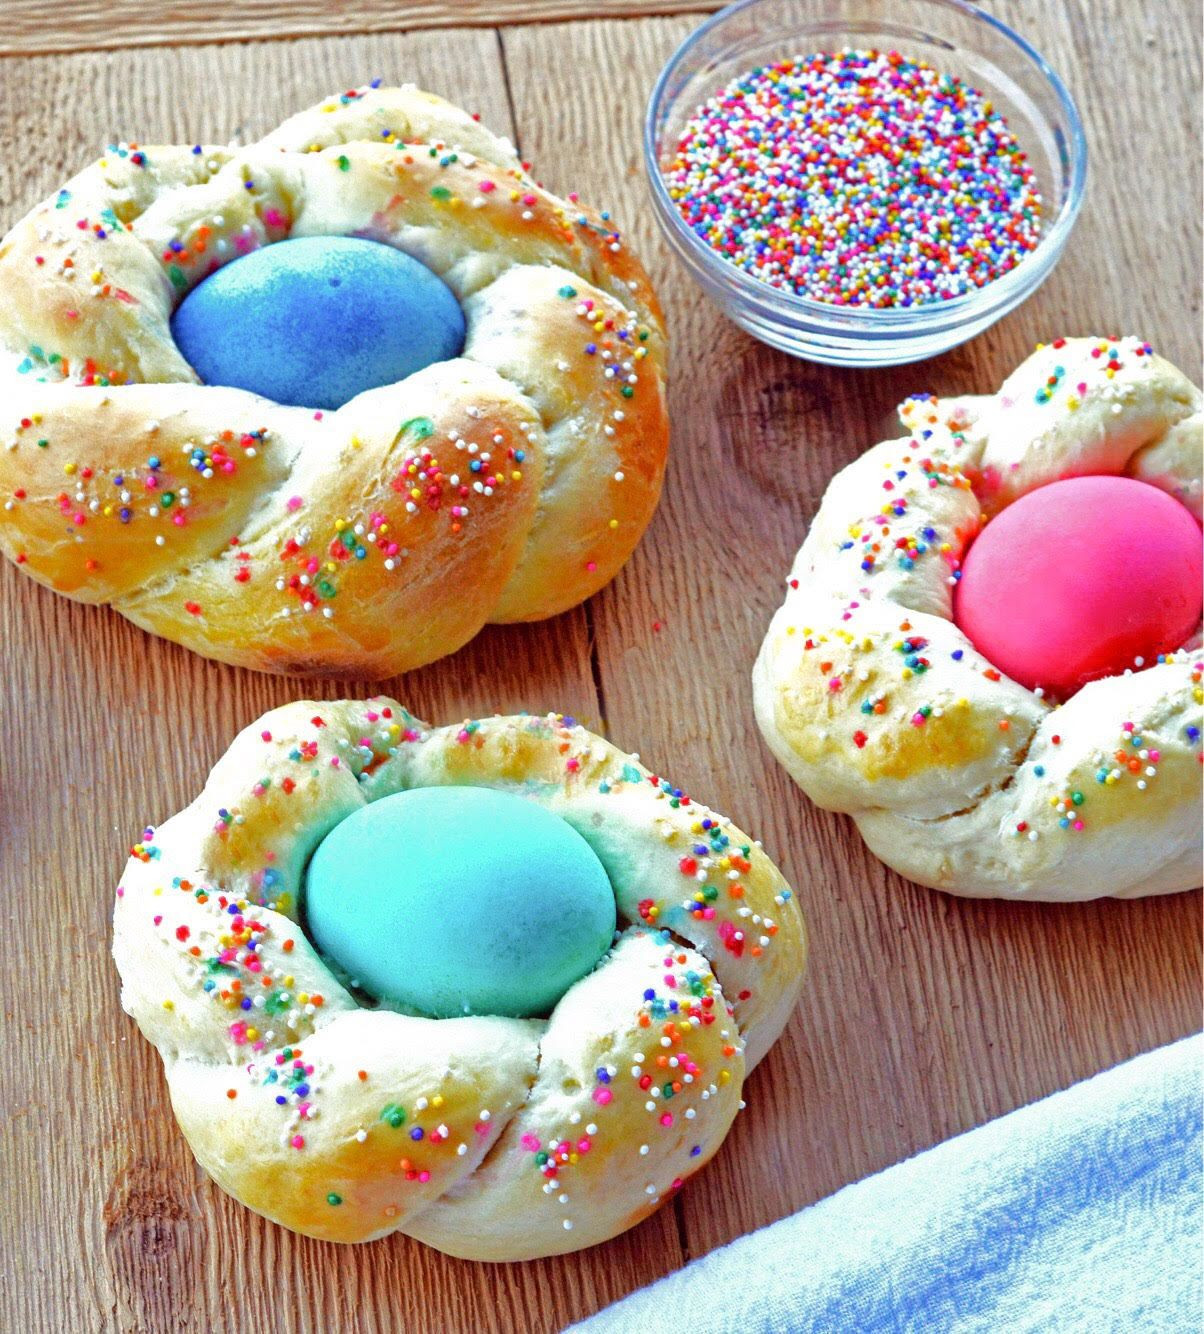 Italian Easter Bread With Eggs  Italian Easter Egg Wreath Bread Recipe 4 The Love Family